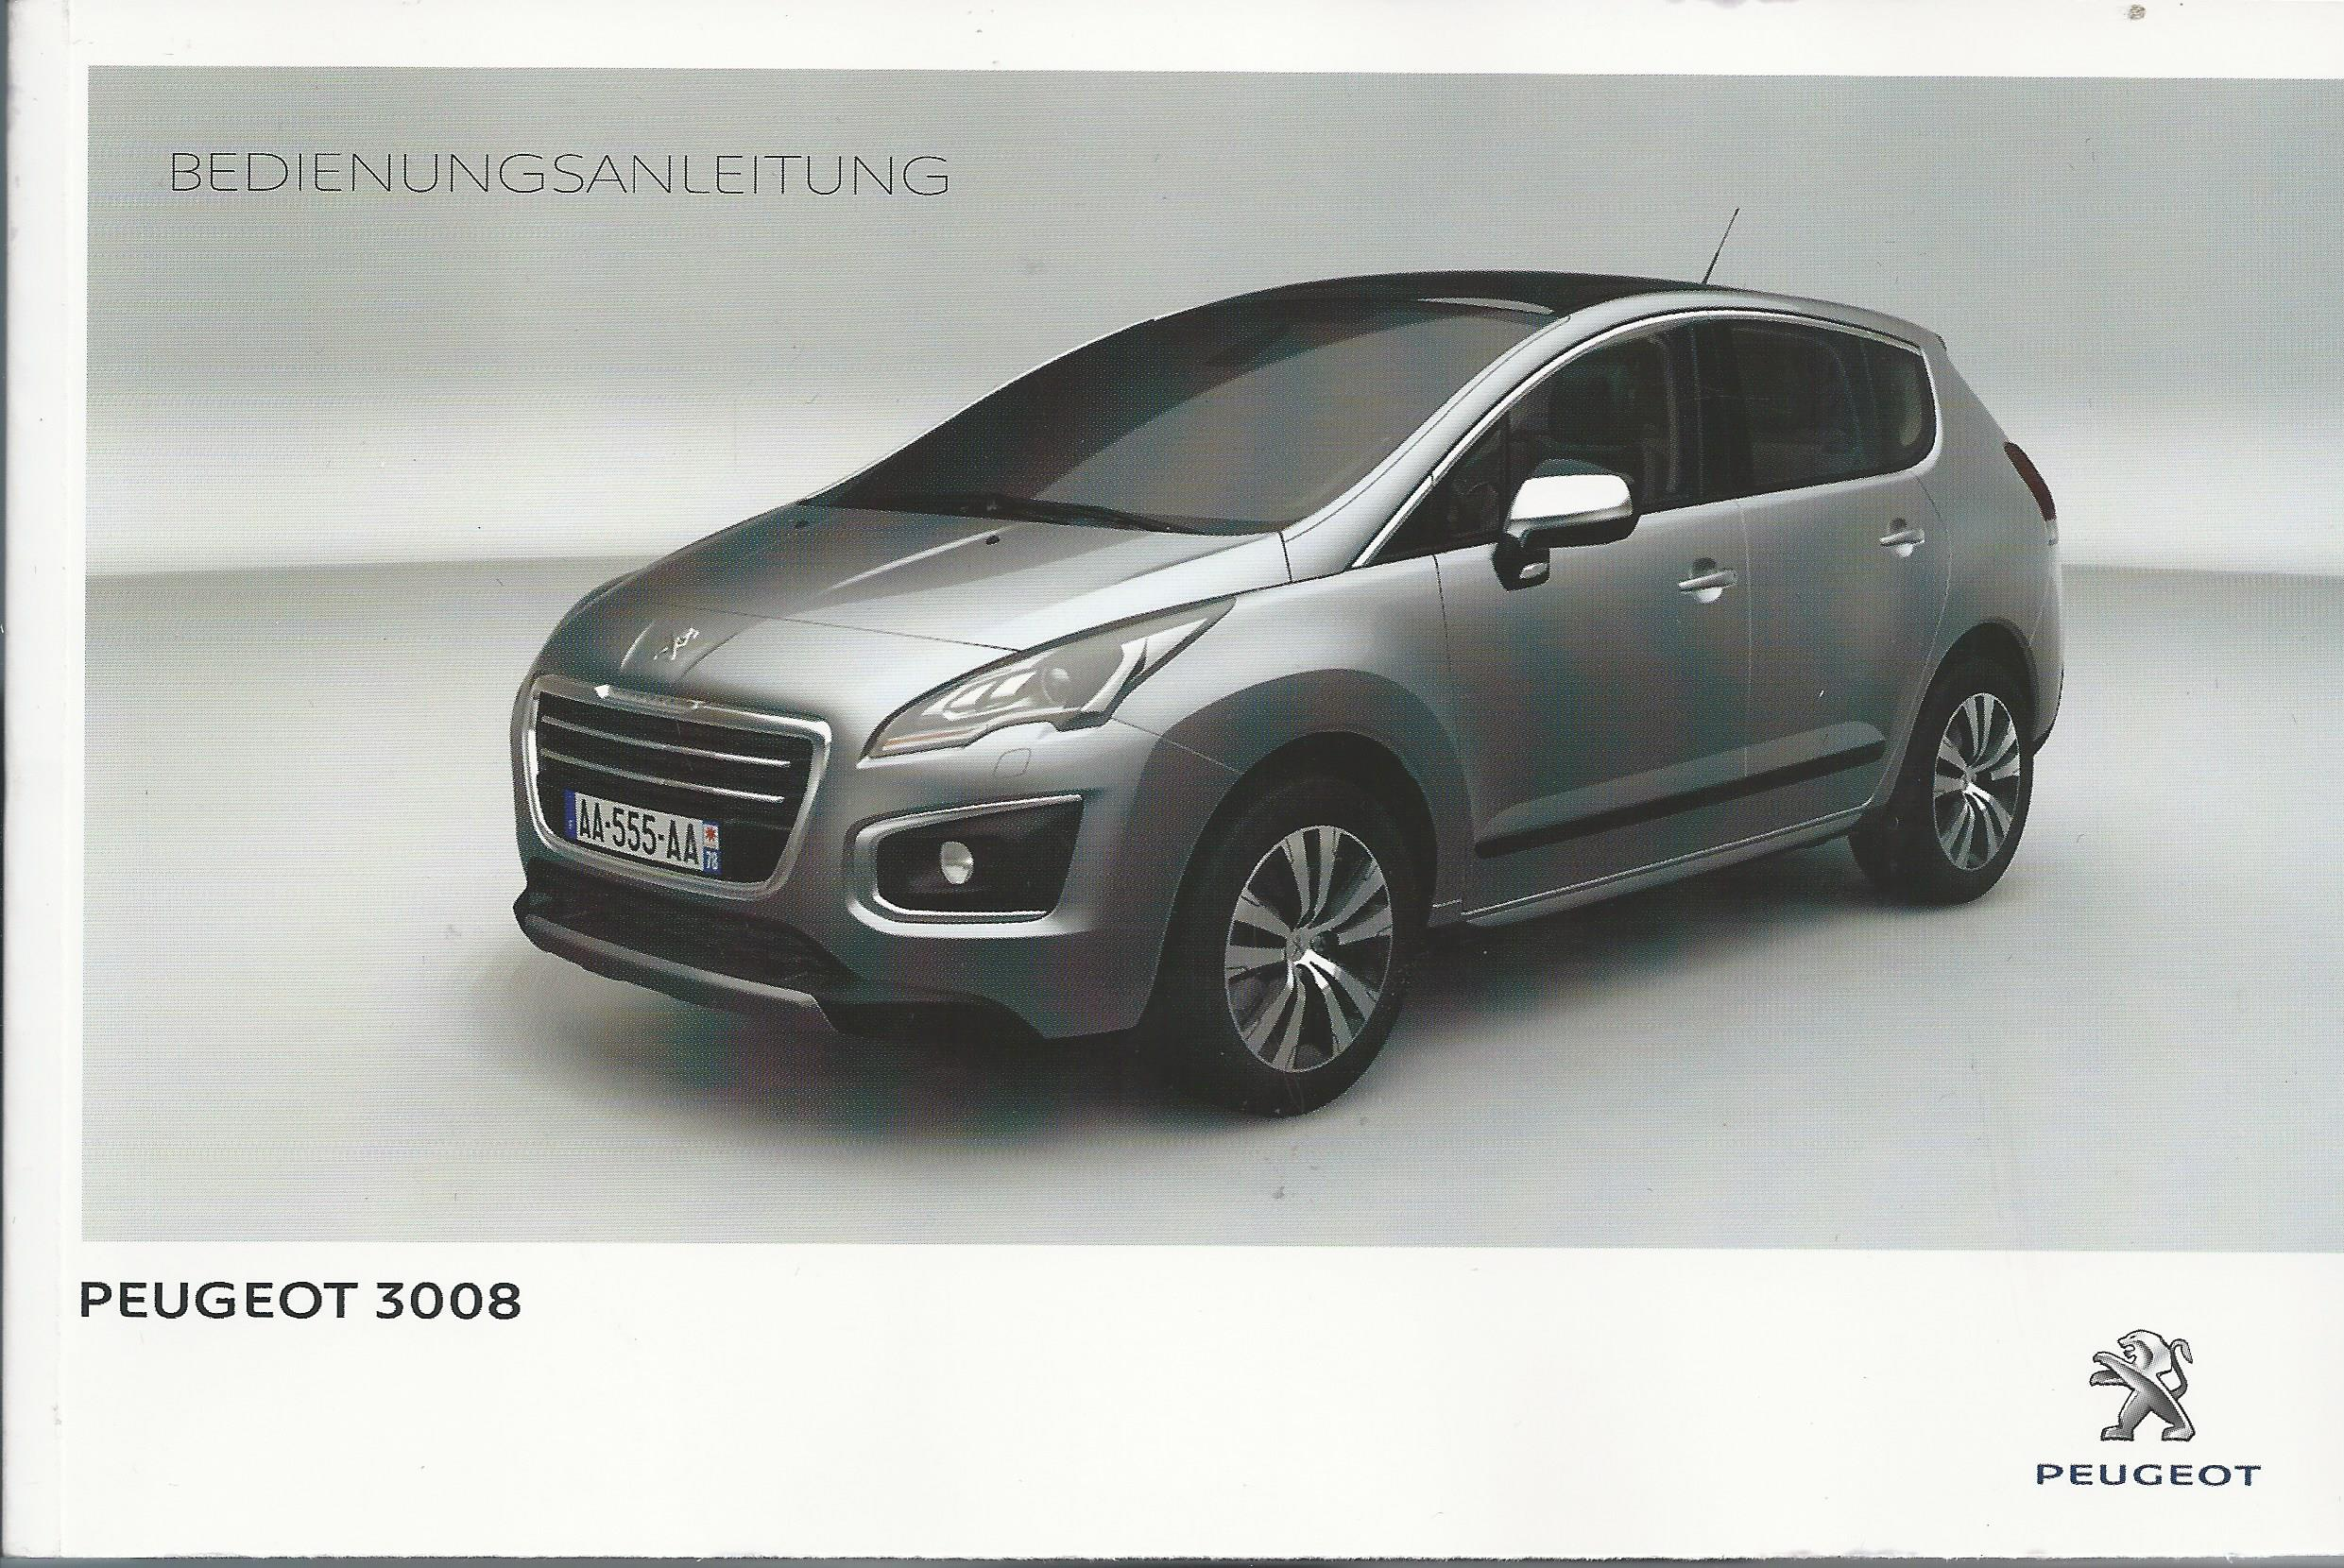 peugeot 3008 manuel 2014 manuel mode d 39 emploi ba ebay. Black Bedroom Furniture Sets. Home Design Ideas